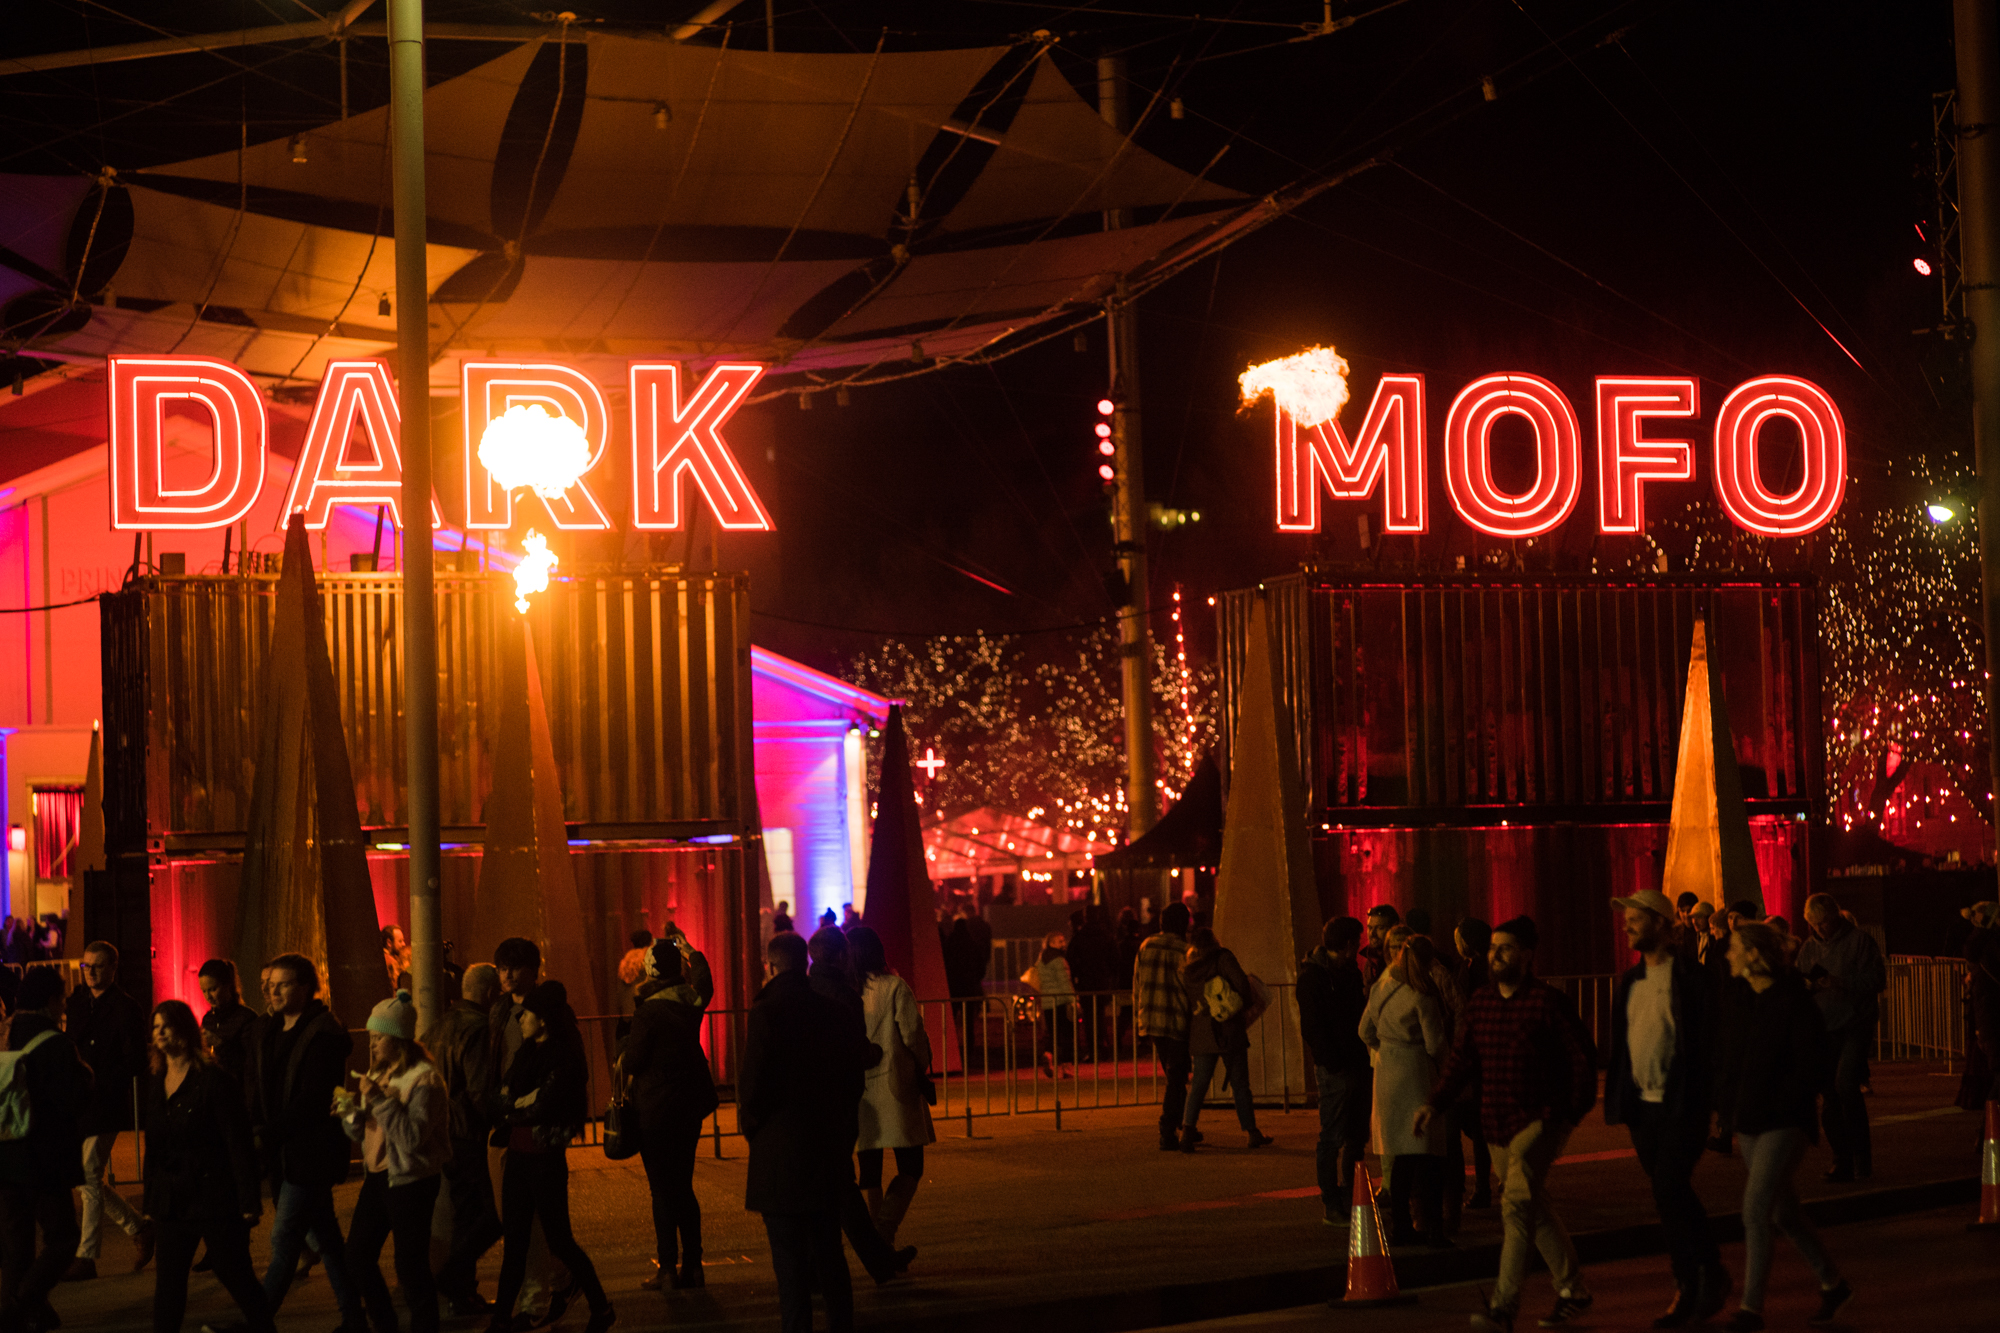 Dark Mofo's call for blood criticised